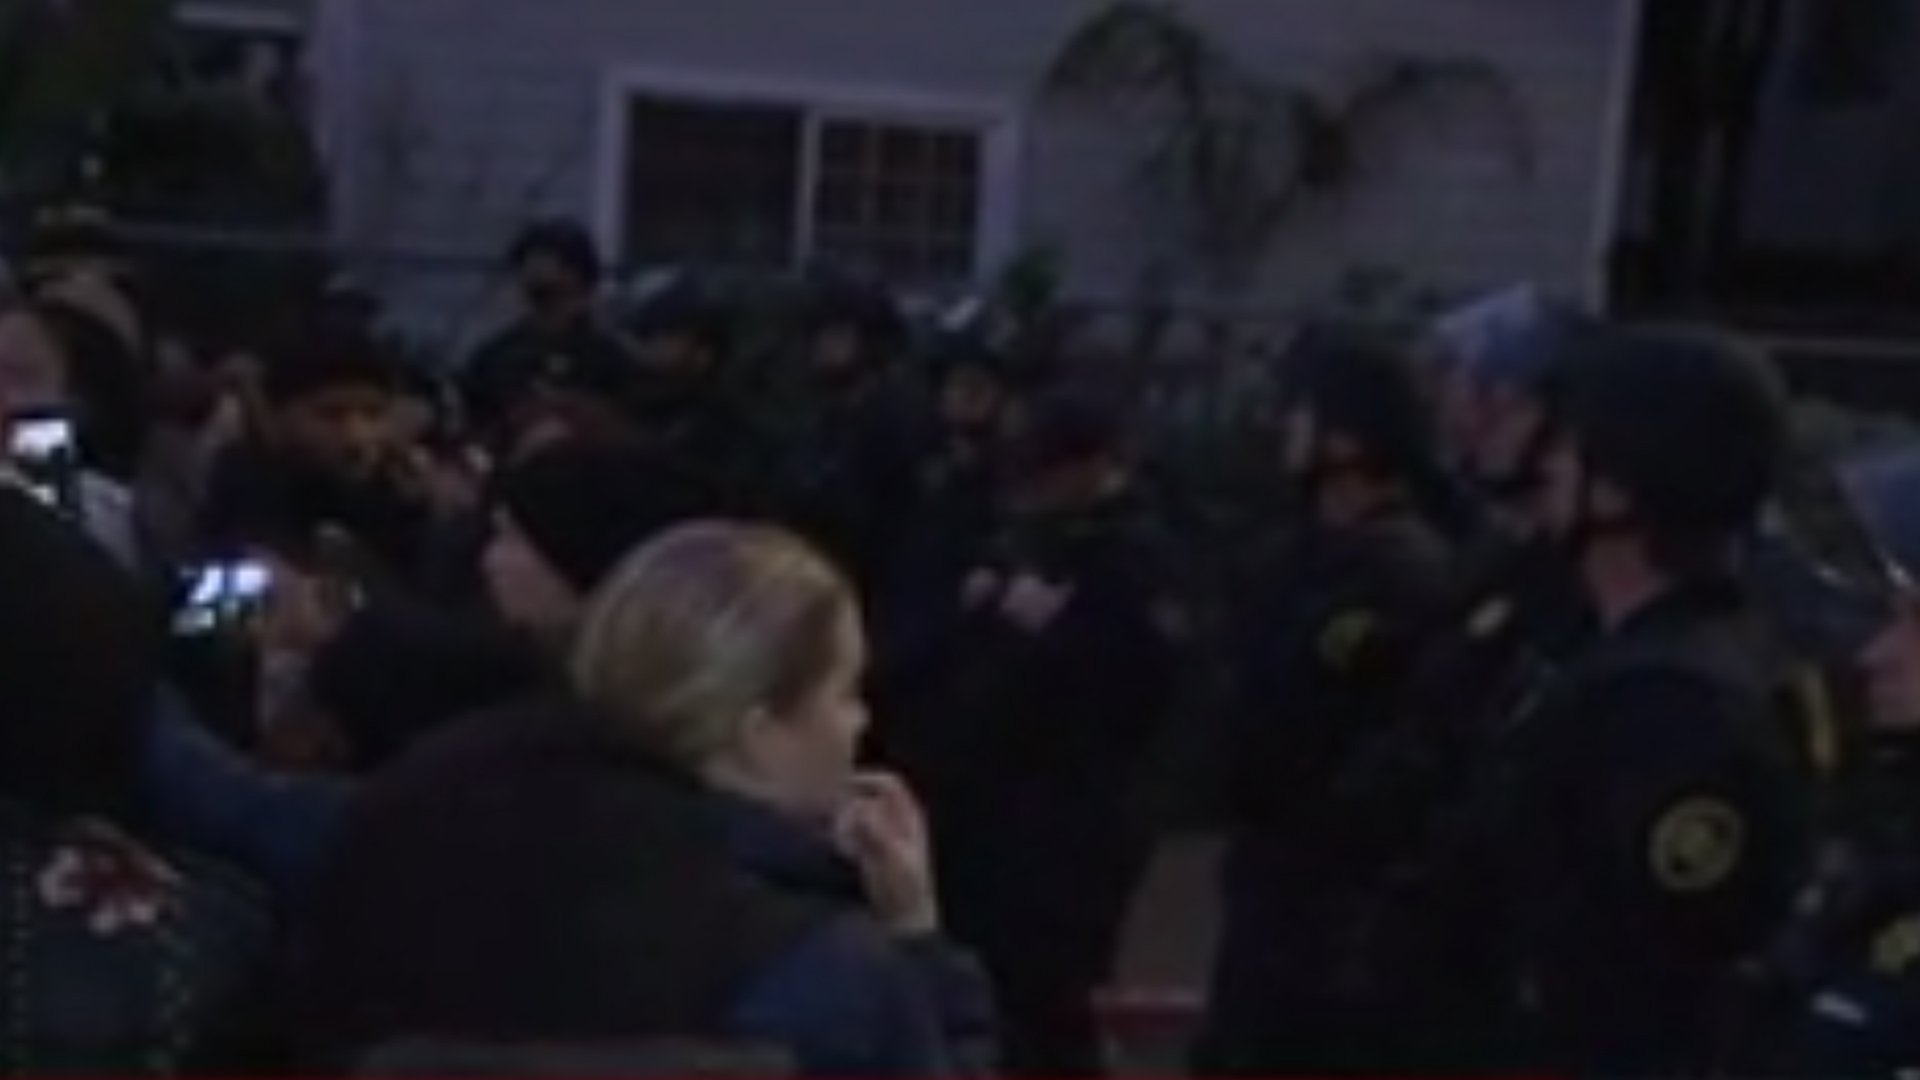 Armed deputies and protesters outside a home where four squatting mothers were evicted on Jan. 14, 2020. (Credit: KPIX via CNN)